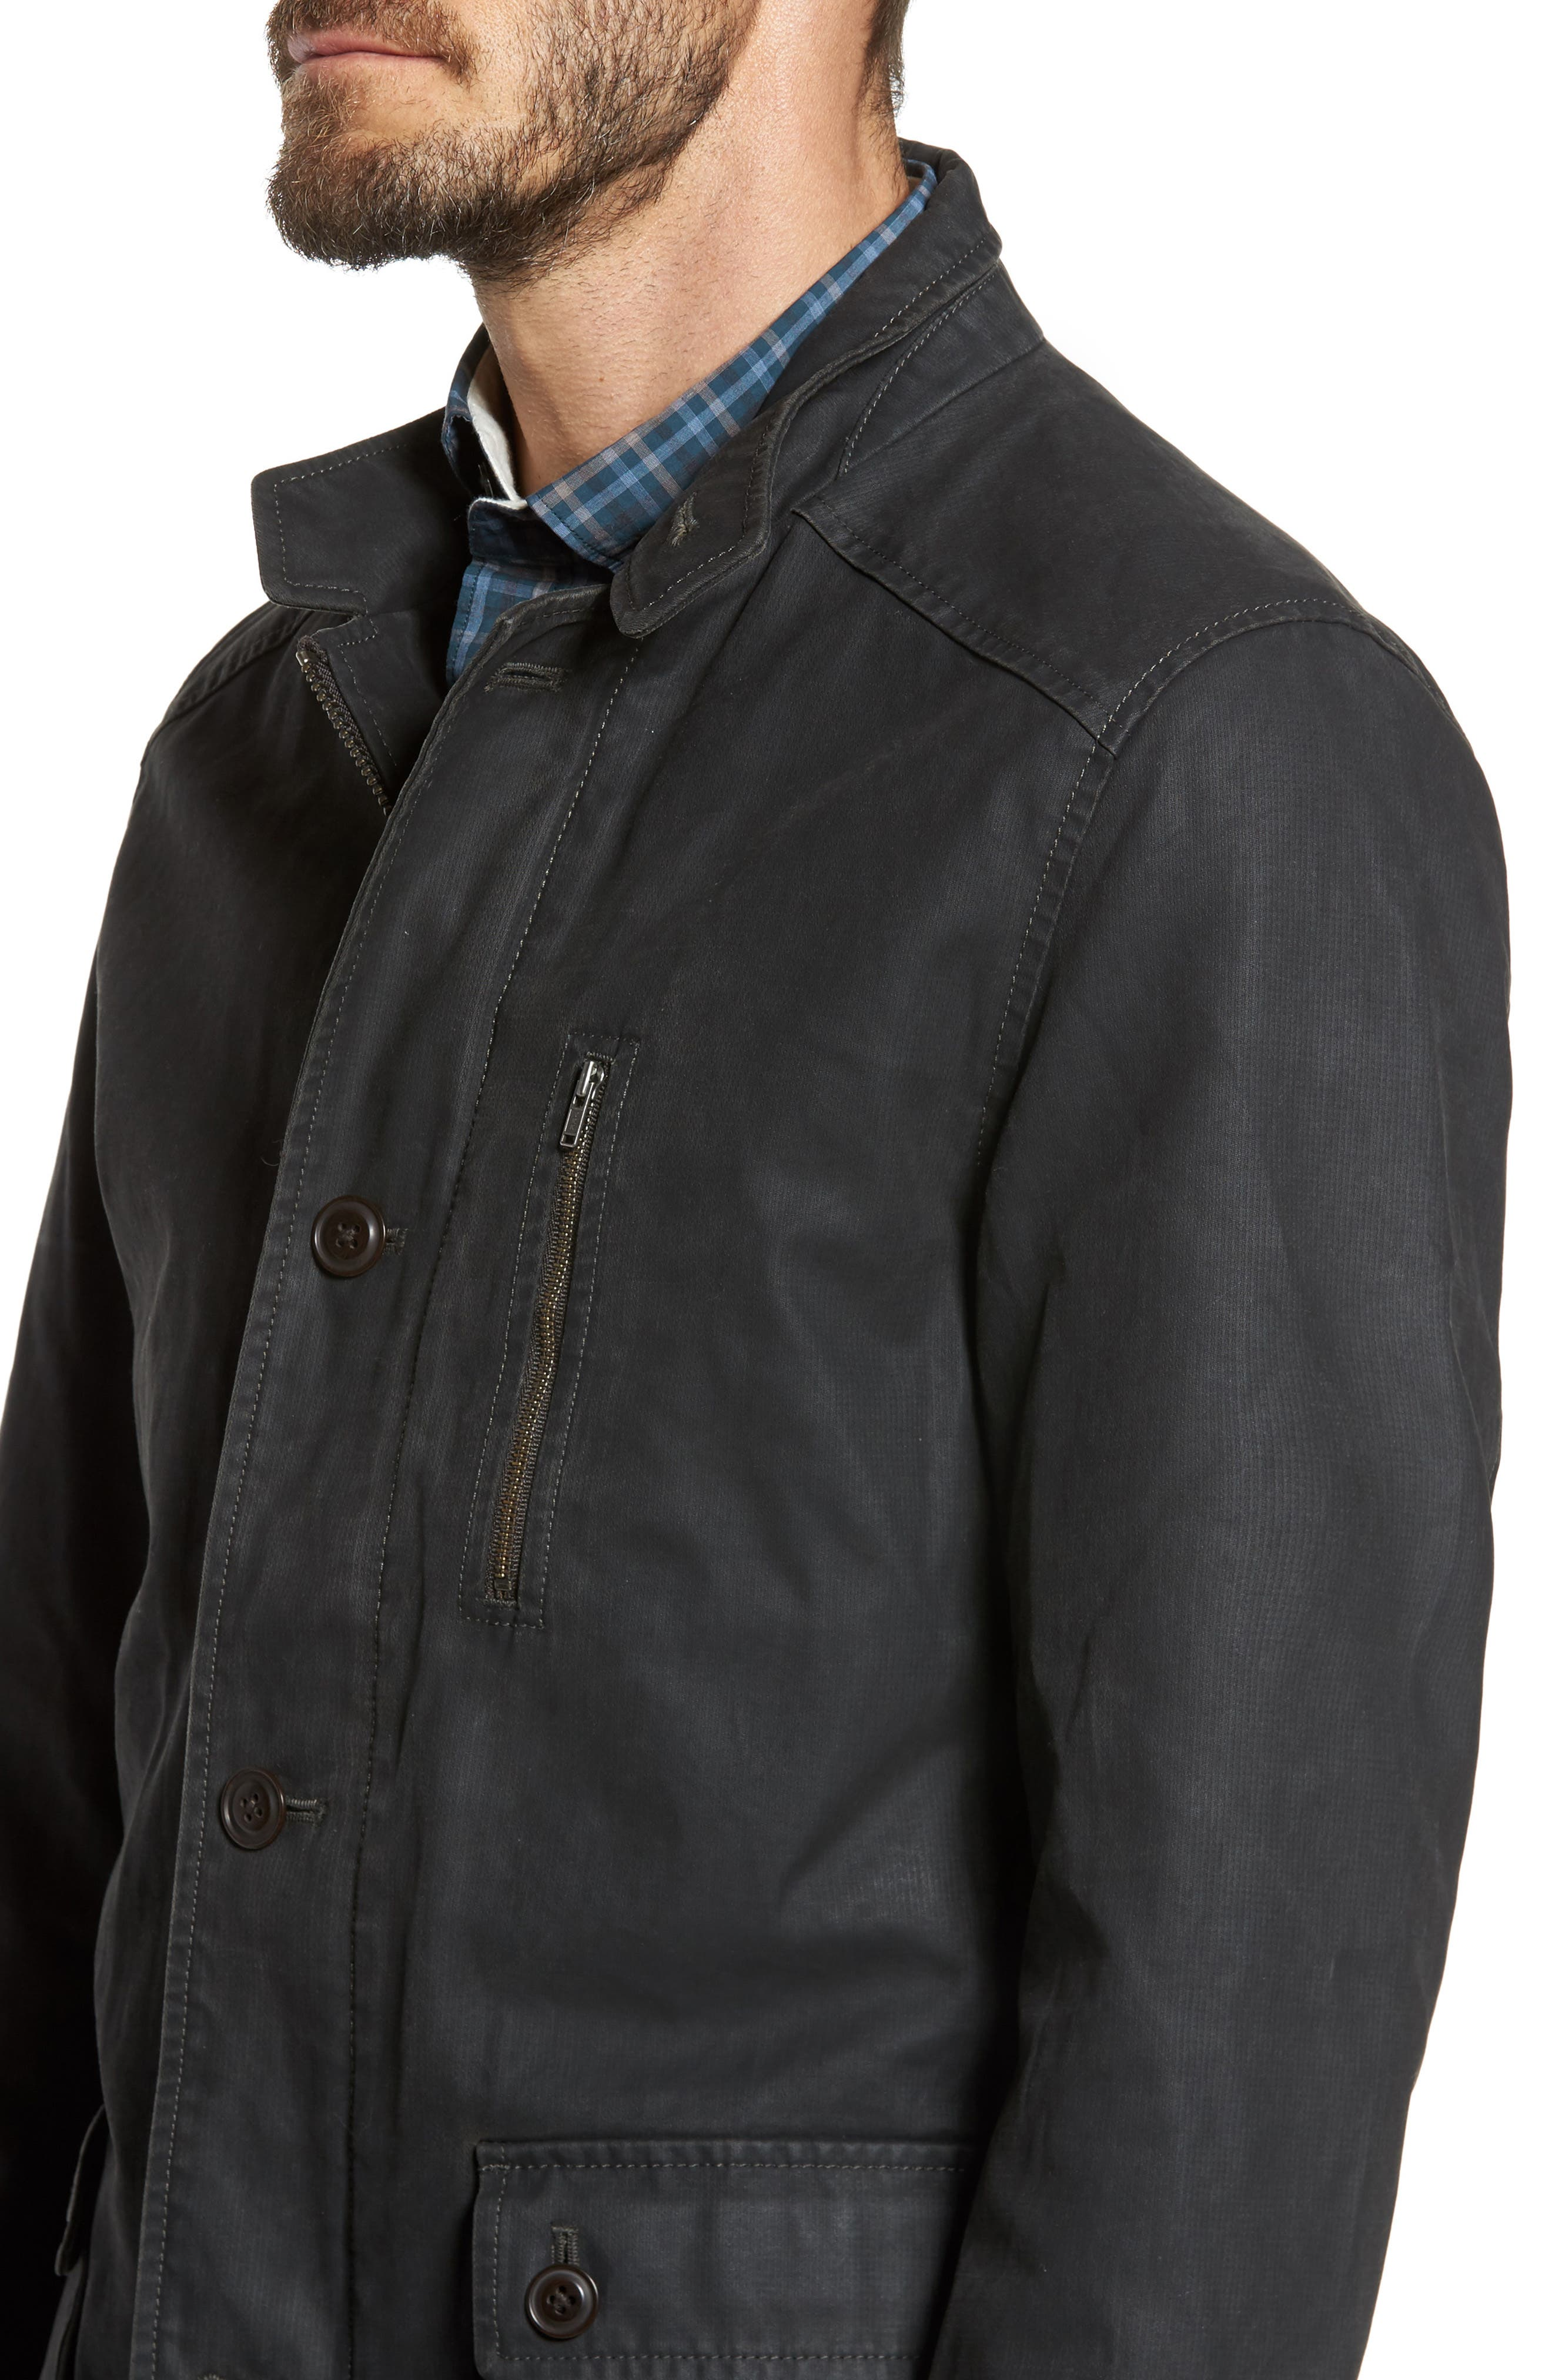 Blackmount Water-Resistant Jacket,                             Alternate thumbnail 4, color,                             Bracken